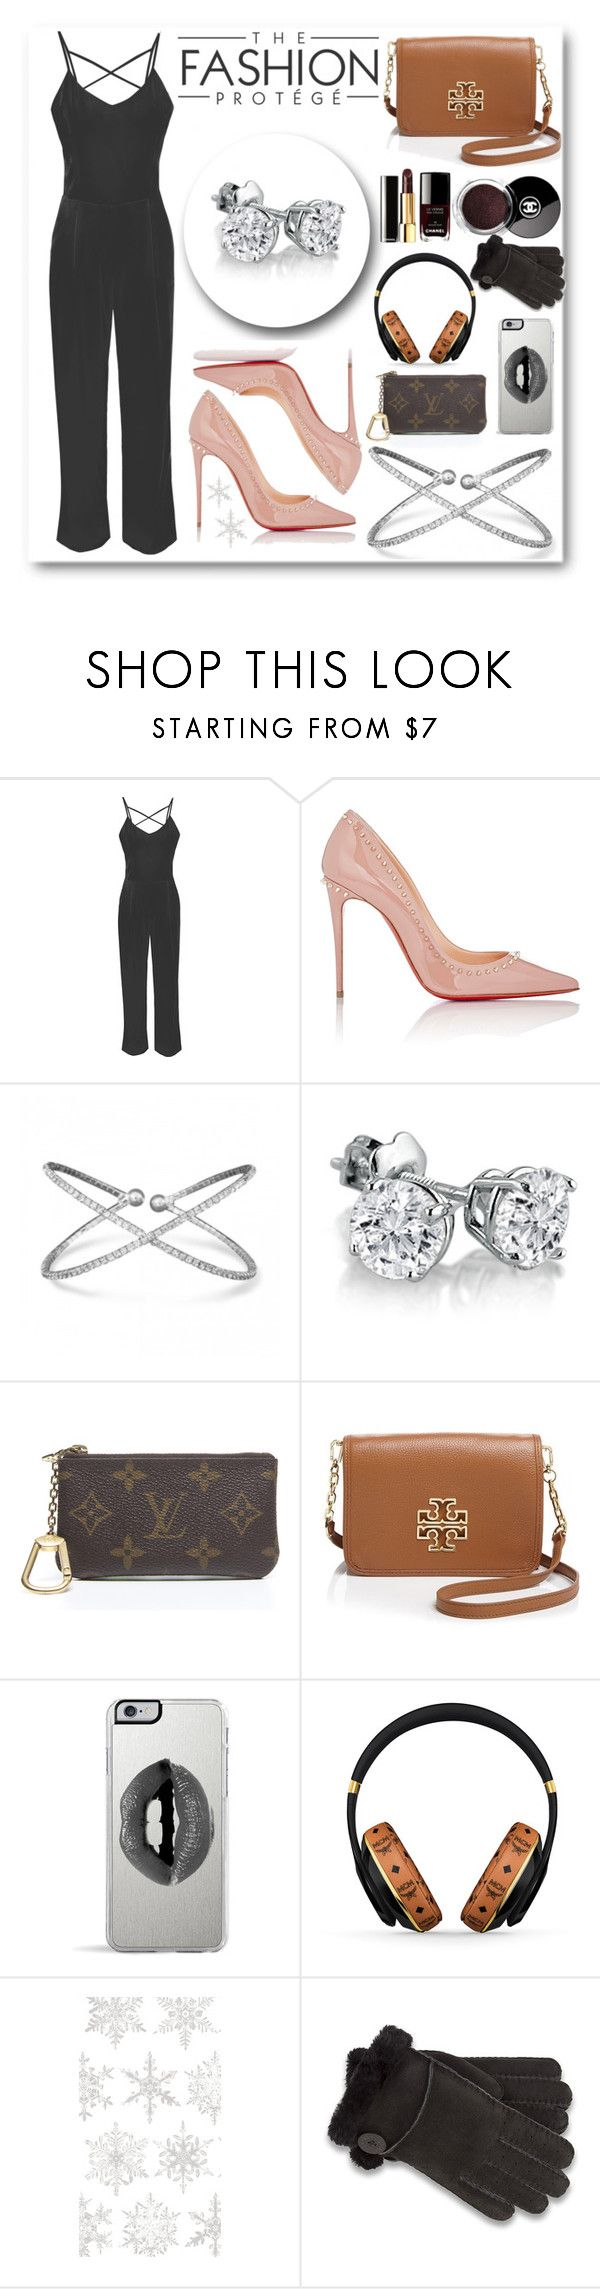 """""""Fall Fashion featuring a formal jumpsuit"""" by mlgjewelry ❤ liked on Polyvore featuring Glamorous, Christian Louboutin, Amanda Rose Collection, Louis Vuitton, Tory Burch, Chanel, Lipsy, MCM, Caspari and UGG"""